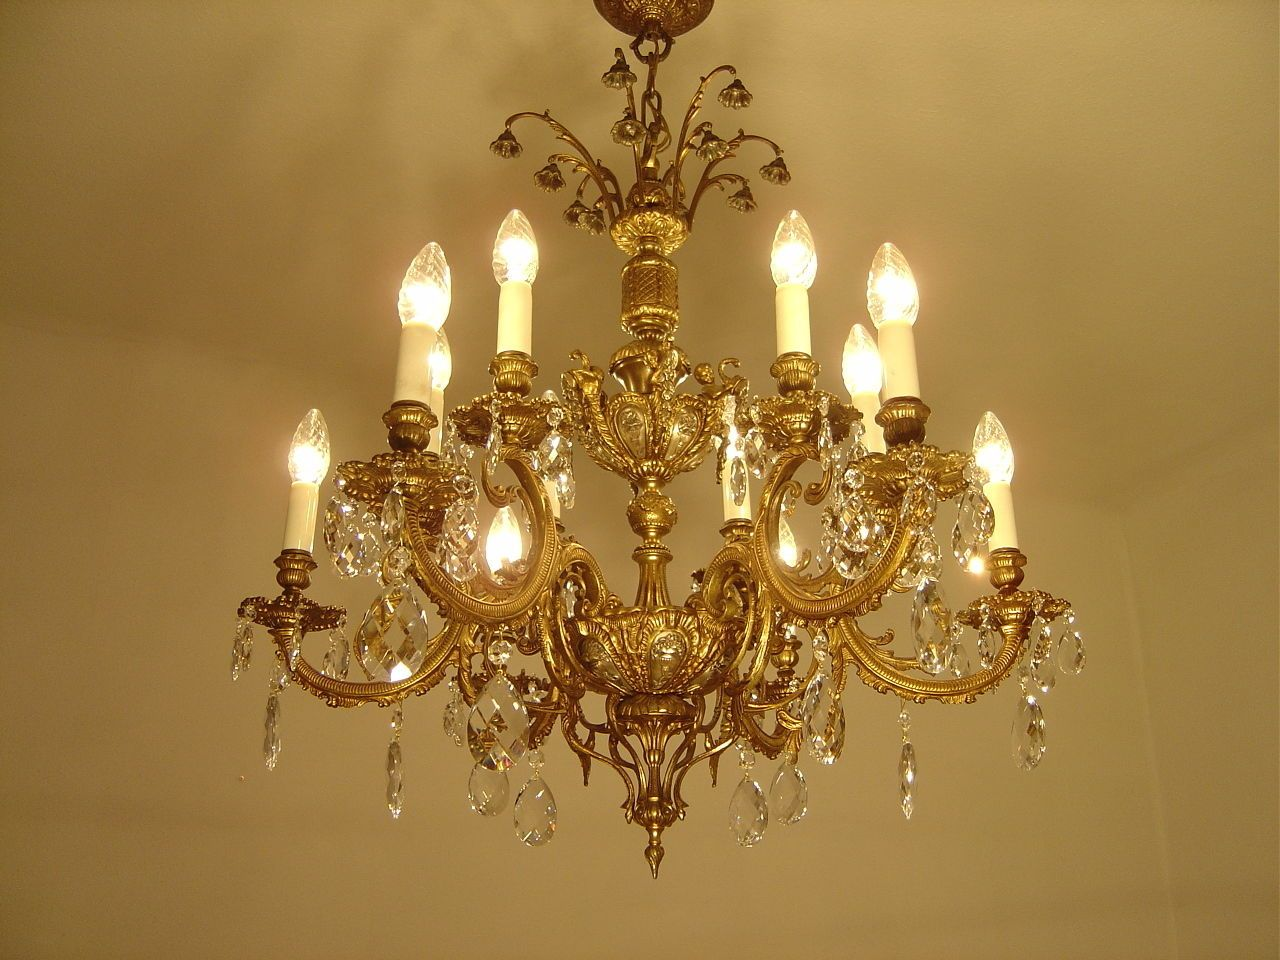 Diy Projects Crystal Prism World Crystal Chandelier Brass Chandelier Antique Brass Chandelier